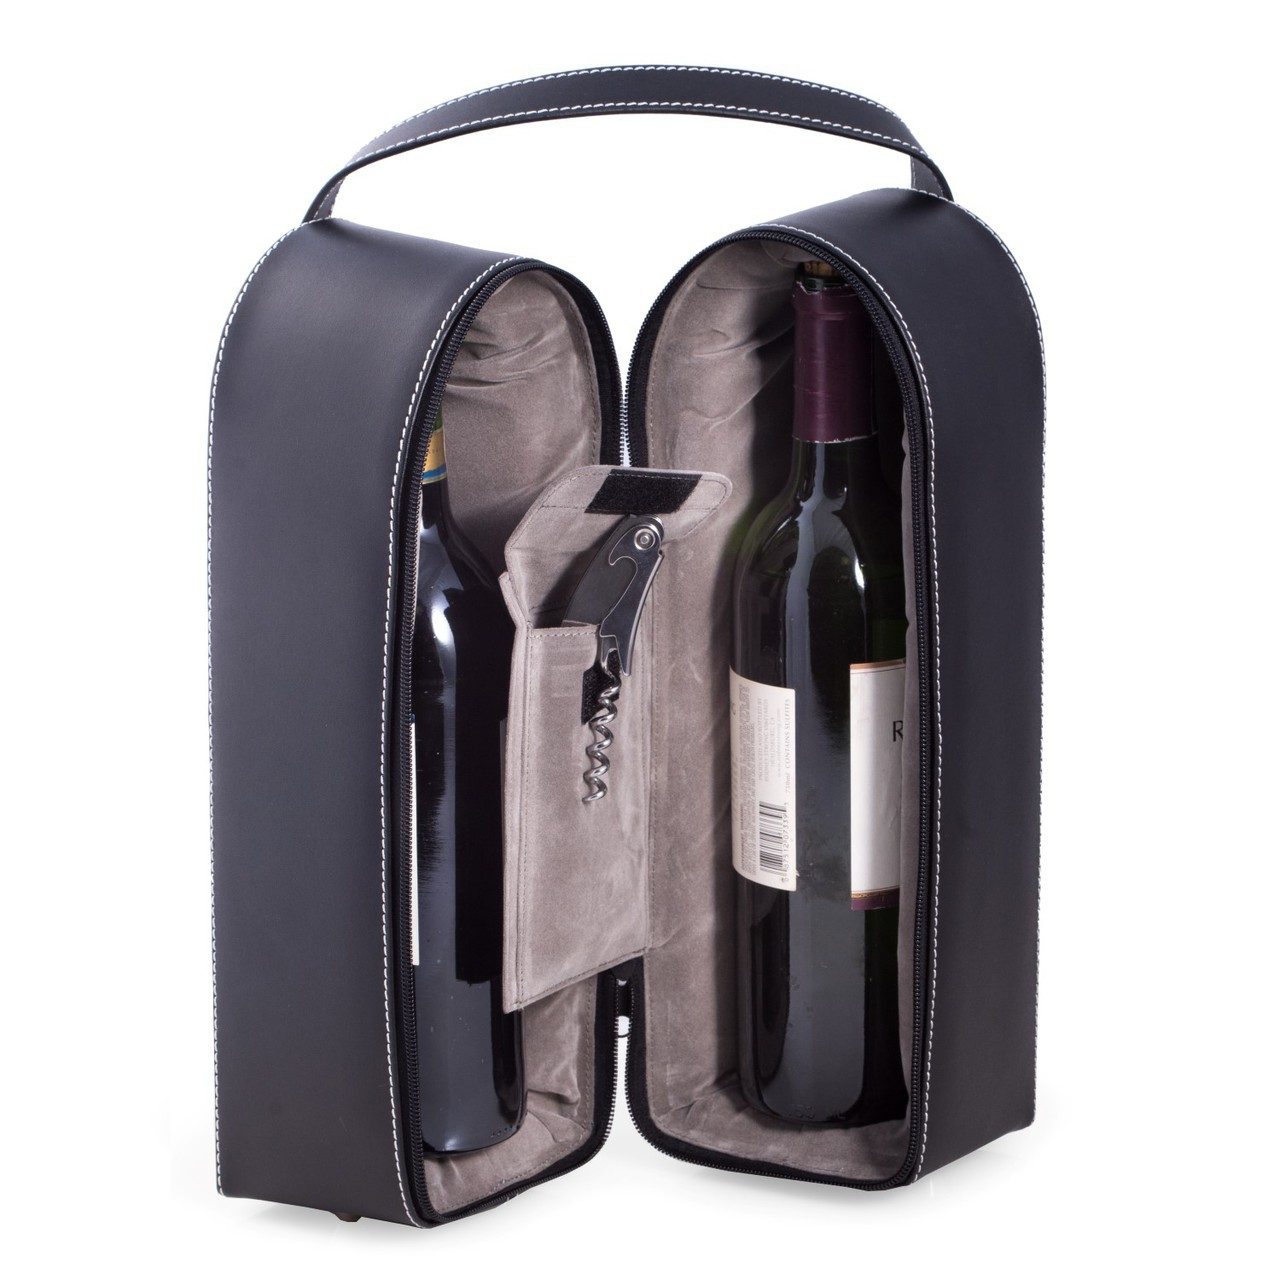 Genuine Personalized Leather 2 Bottle Wine Carrier (set of 24)